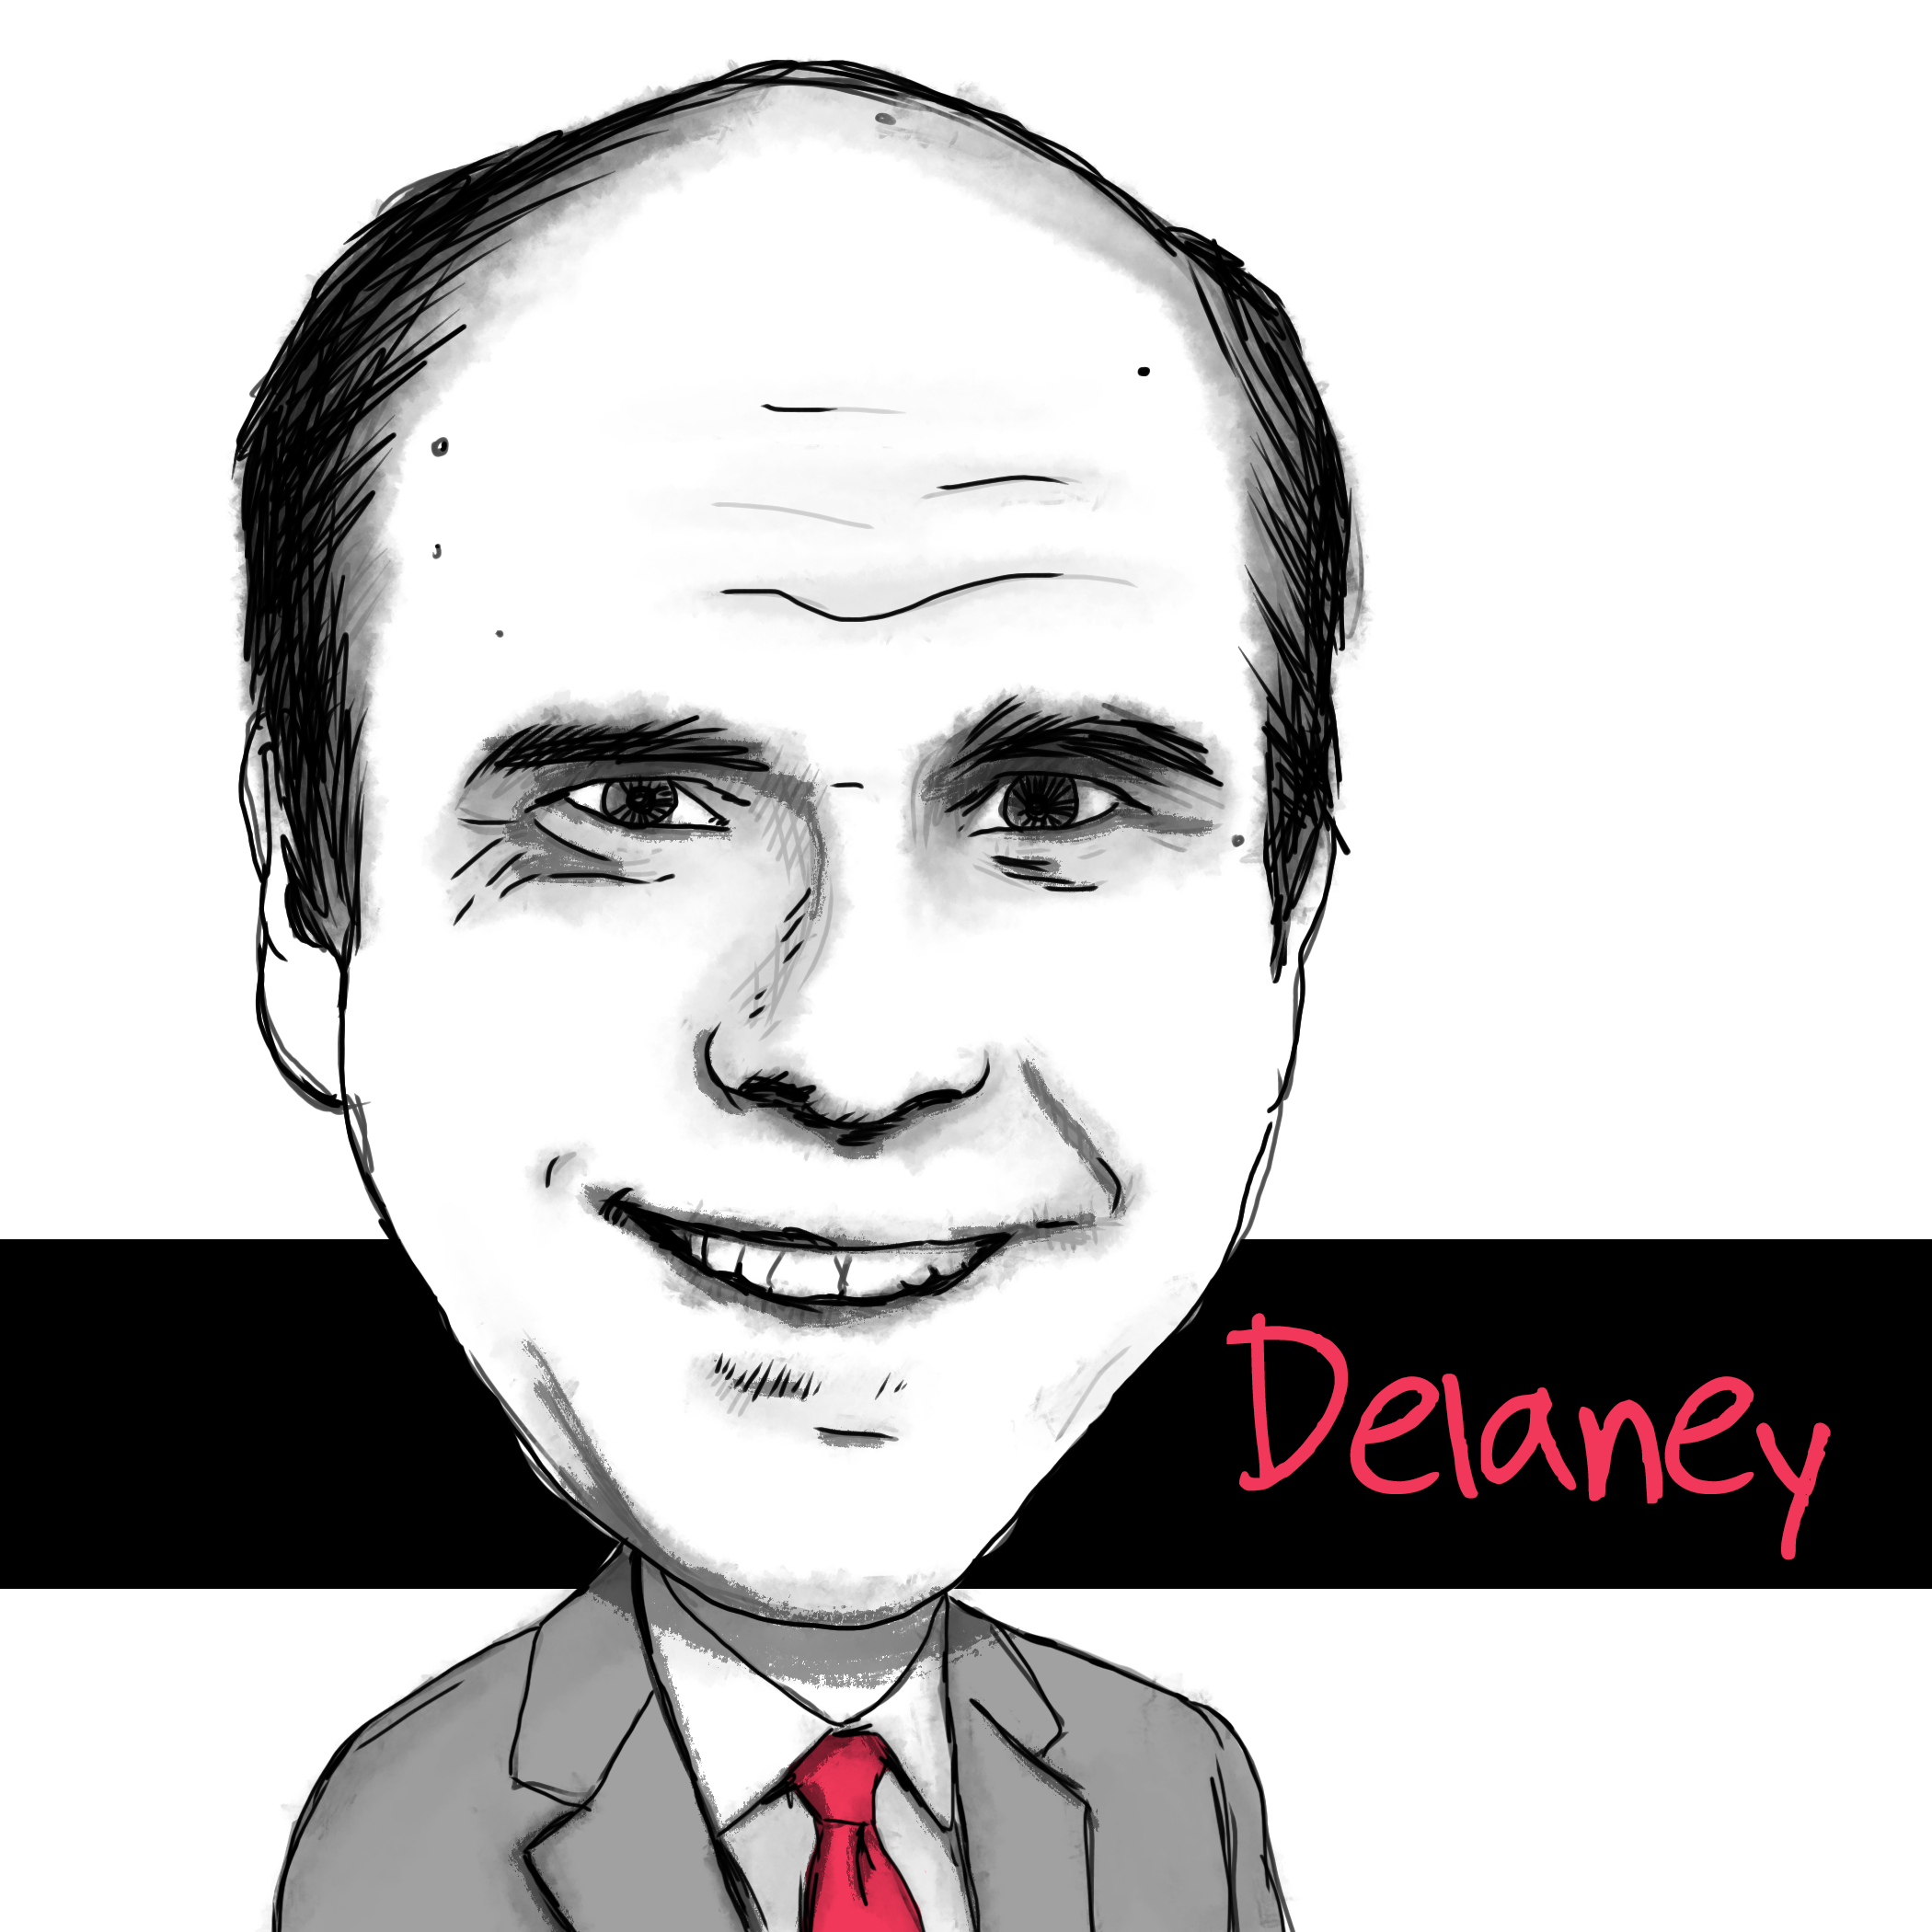 John Delaney - Focus On The Future - https://www.johndelaney.com